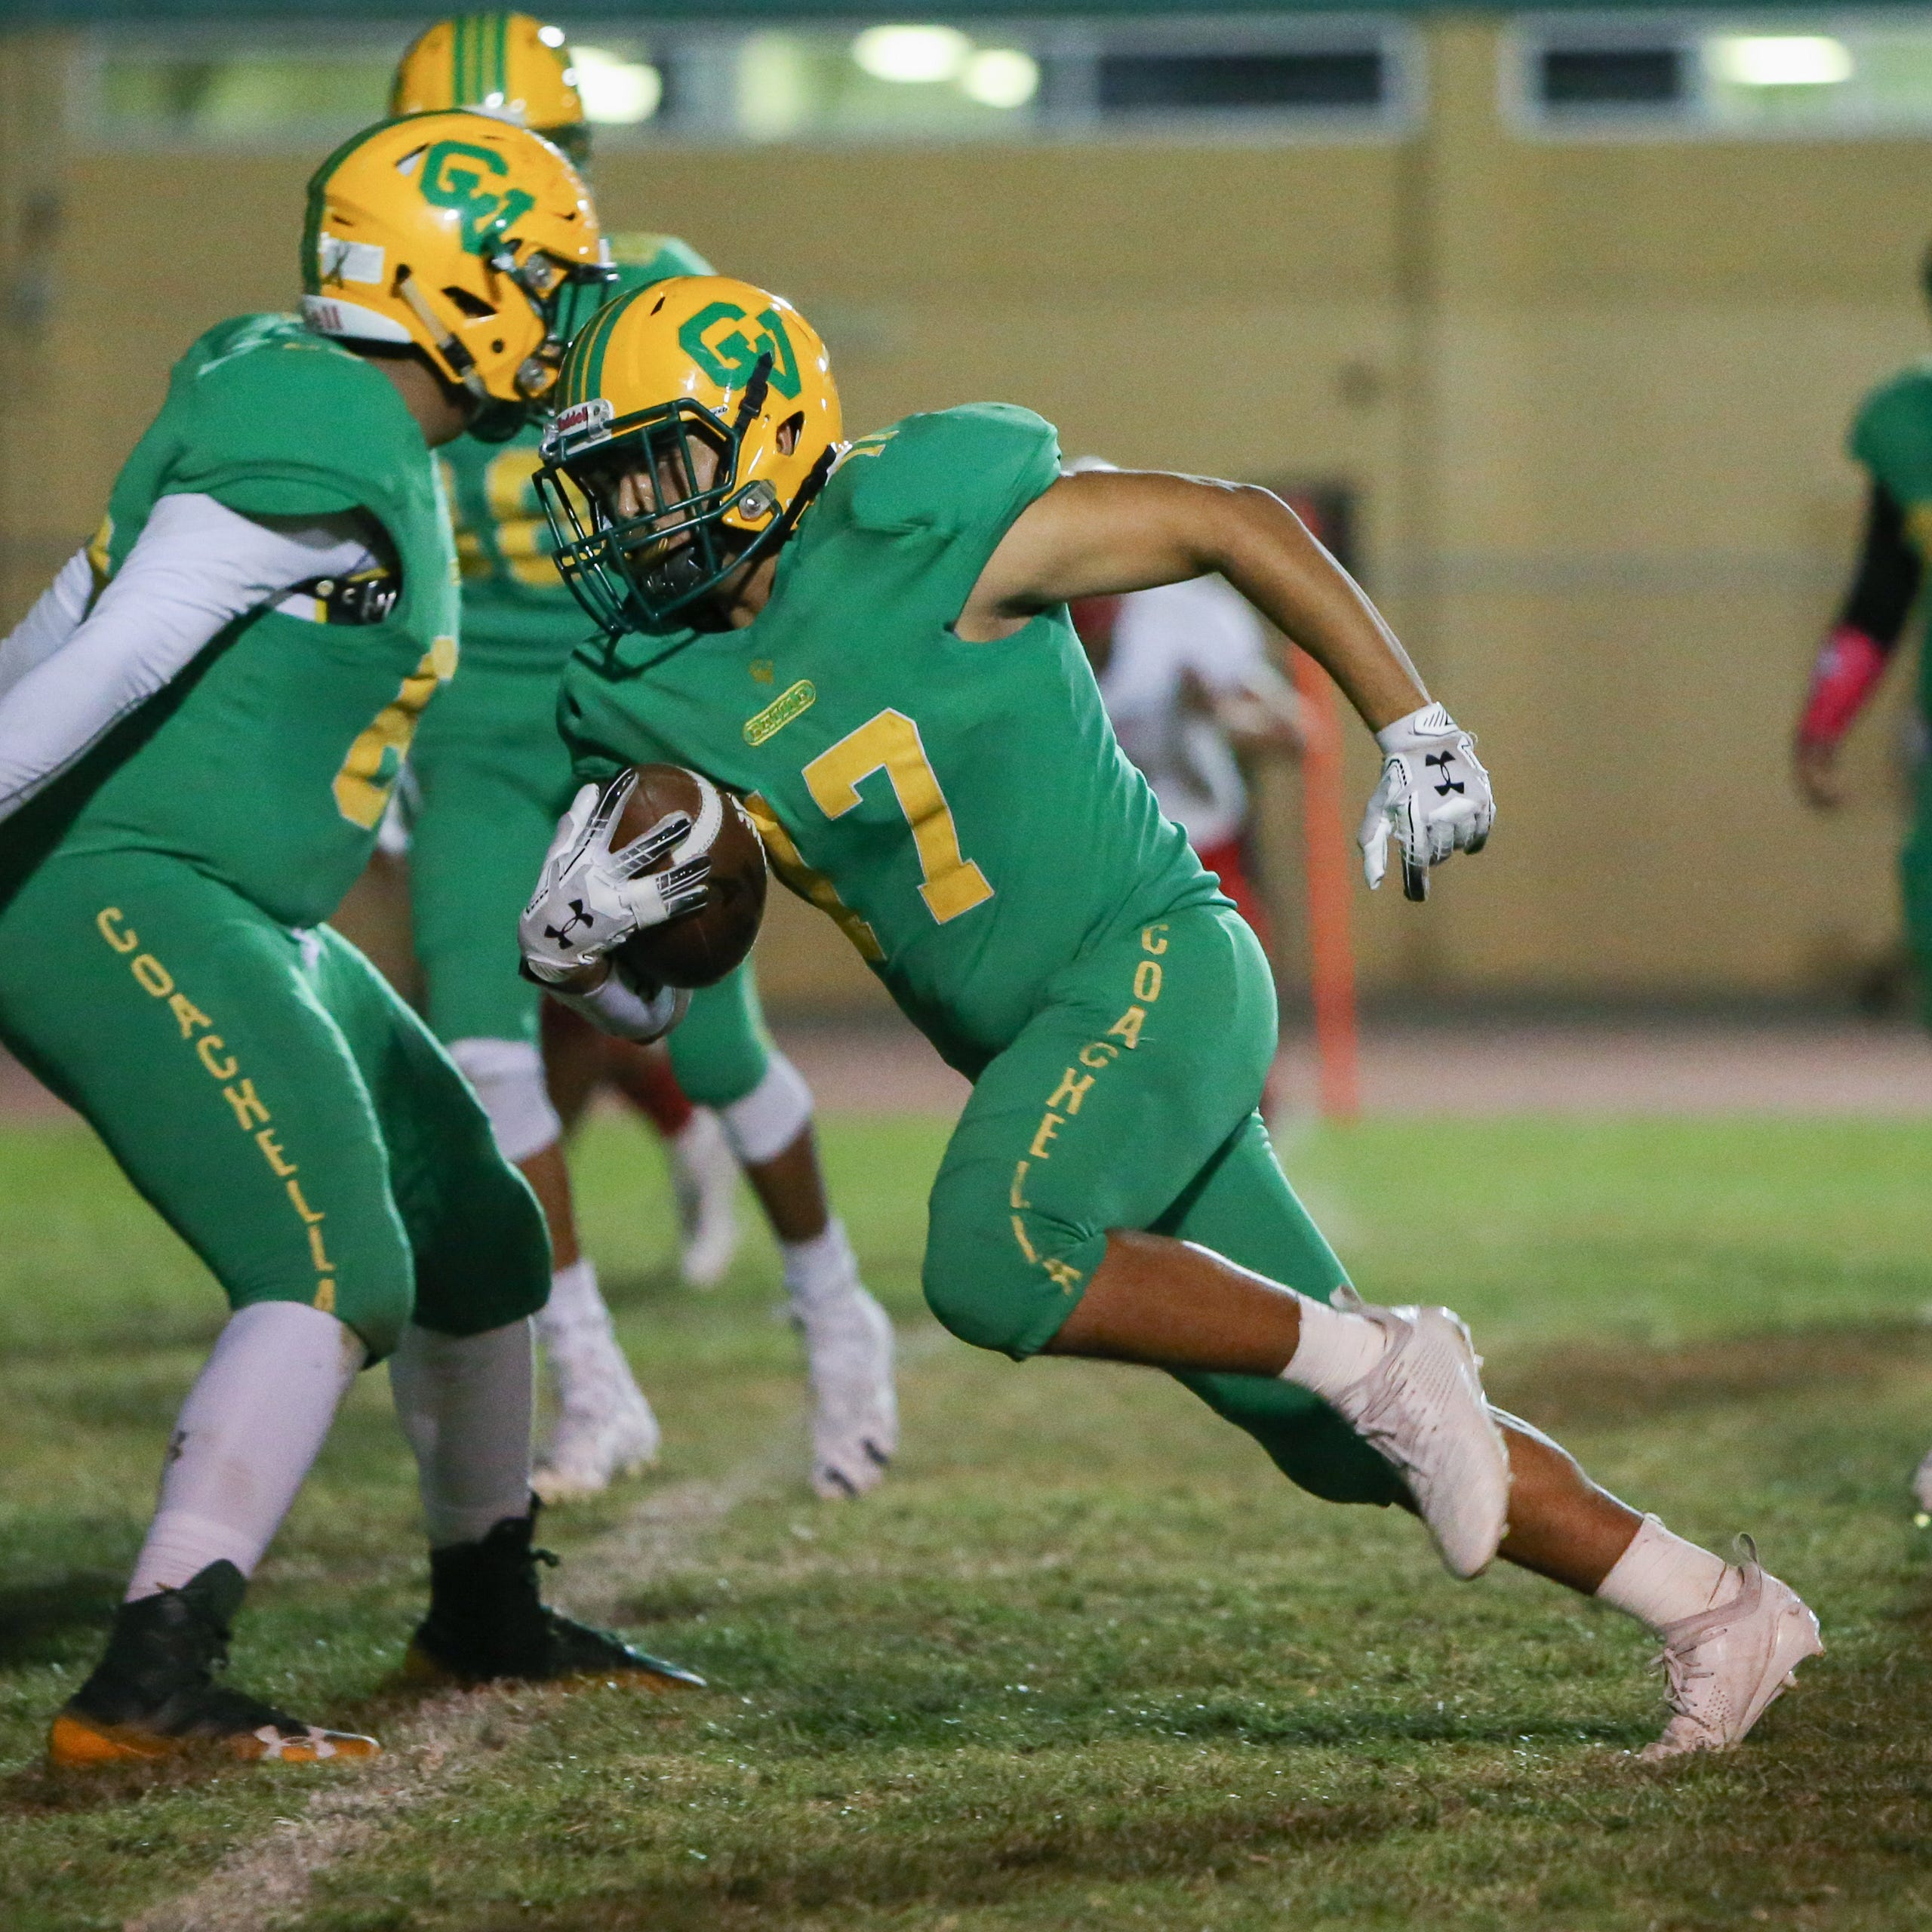 UPDATE: Coachella Valley homecoming football game will be played at home after all